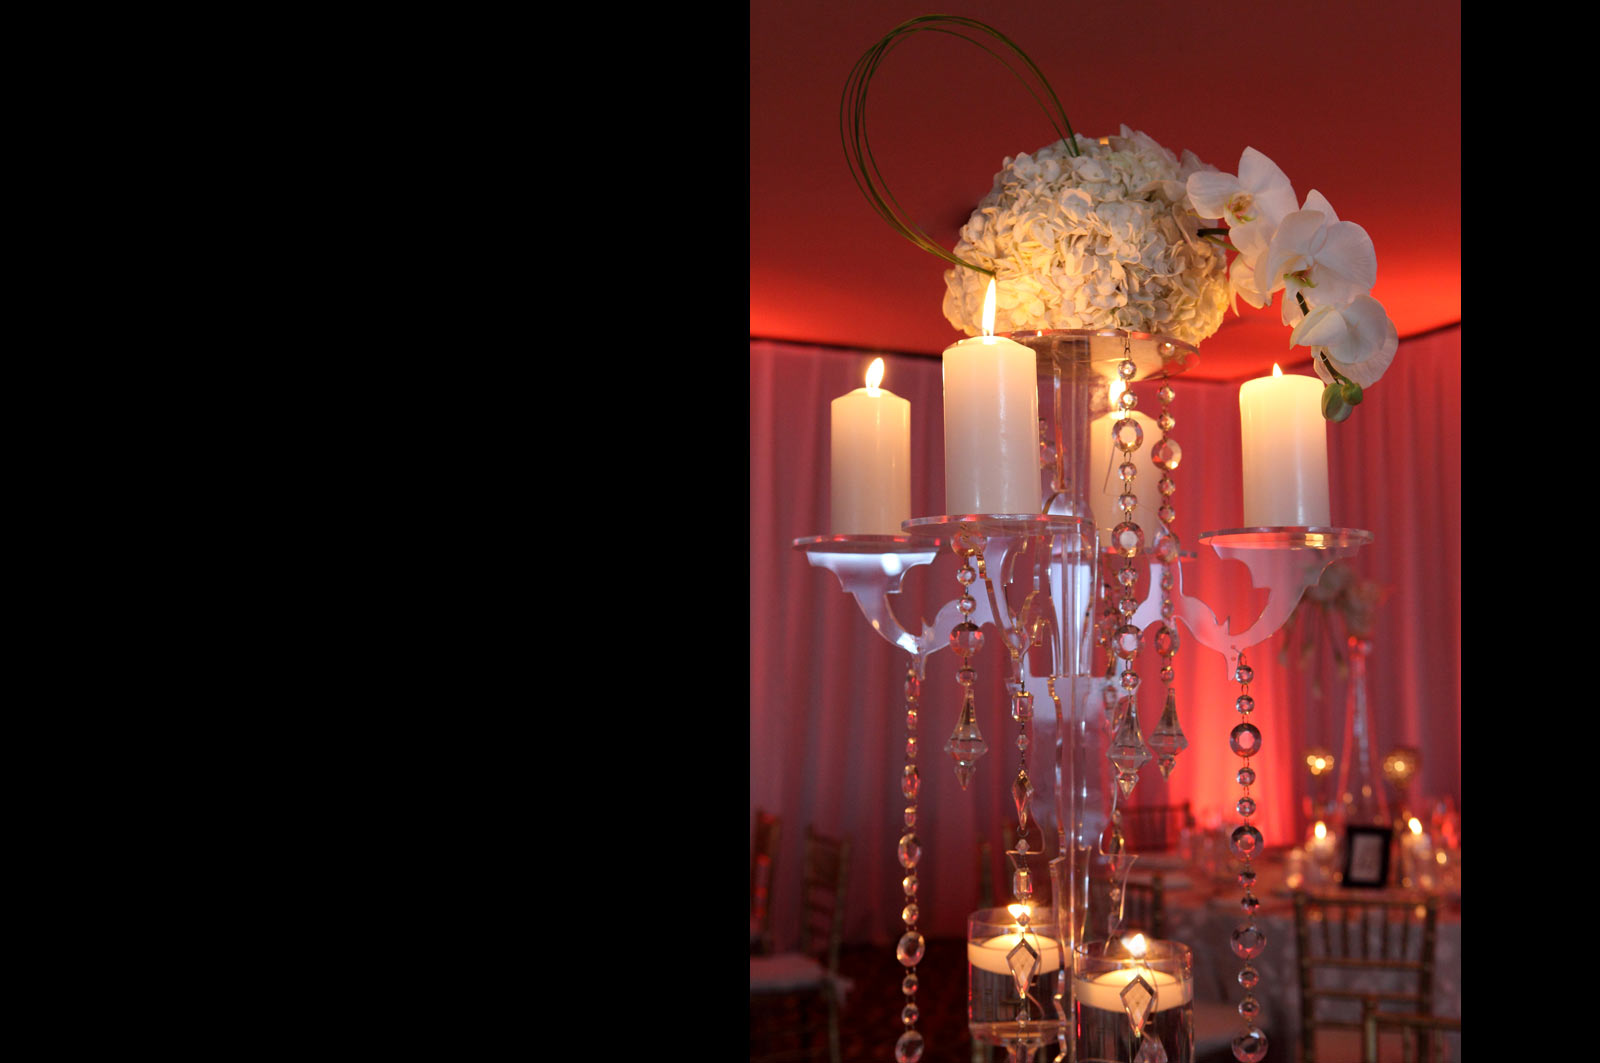 Wedding Candelabra - Centerpiece